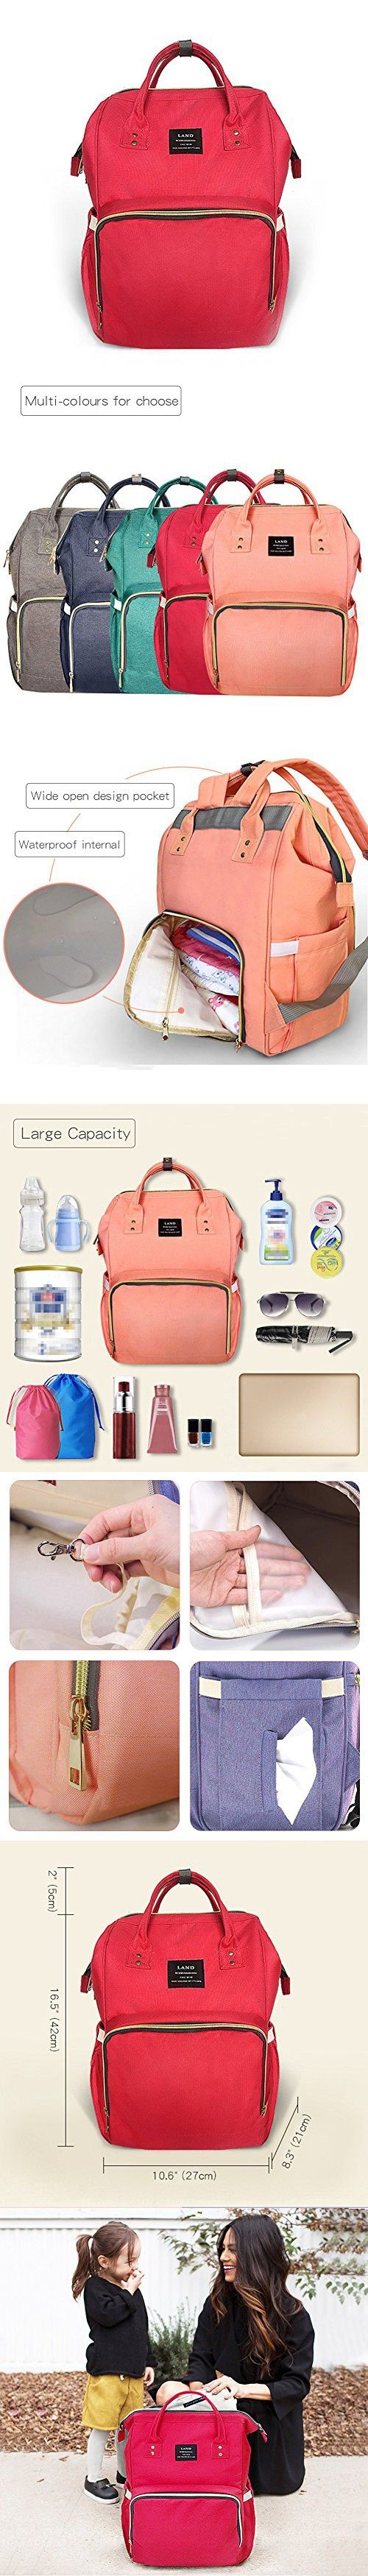 39c12ba9a098 Ticent Diaper Bag Multi-Function Waterproof Travel Backpack Nappy ...